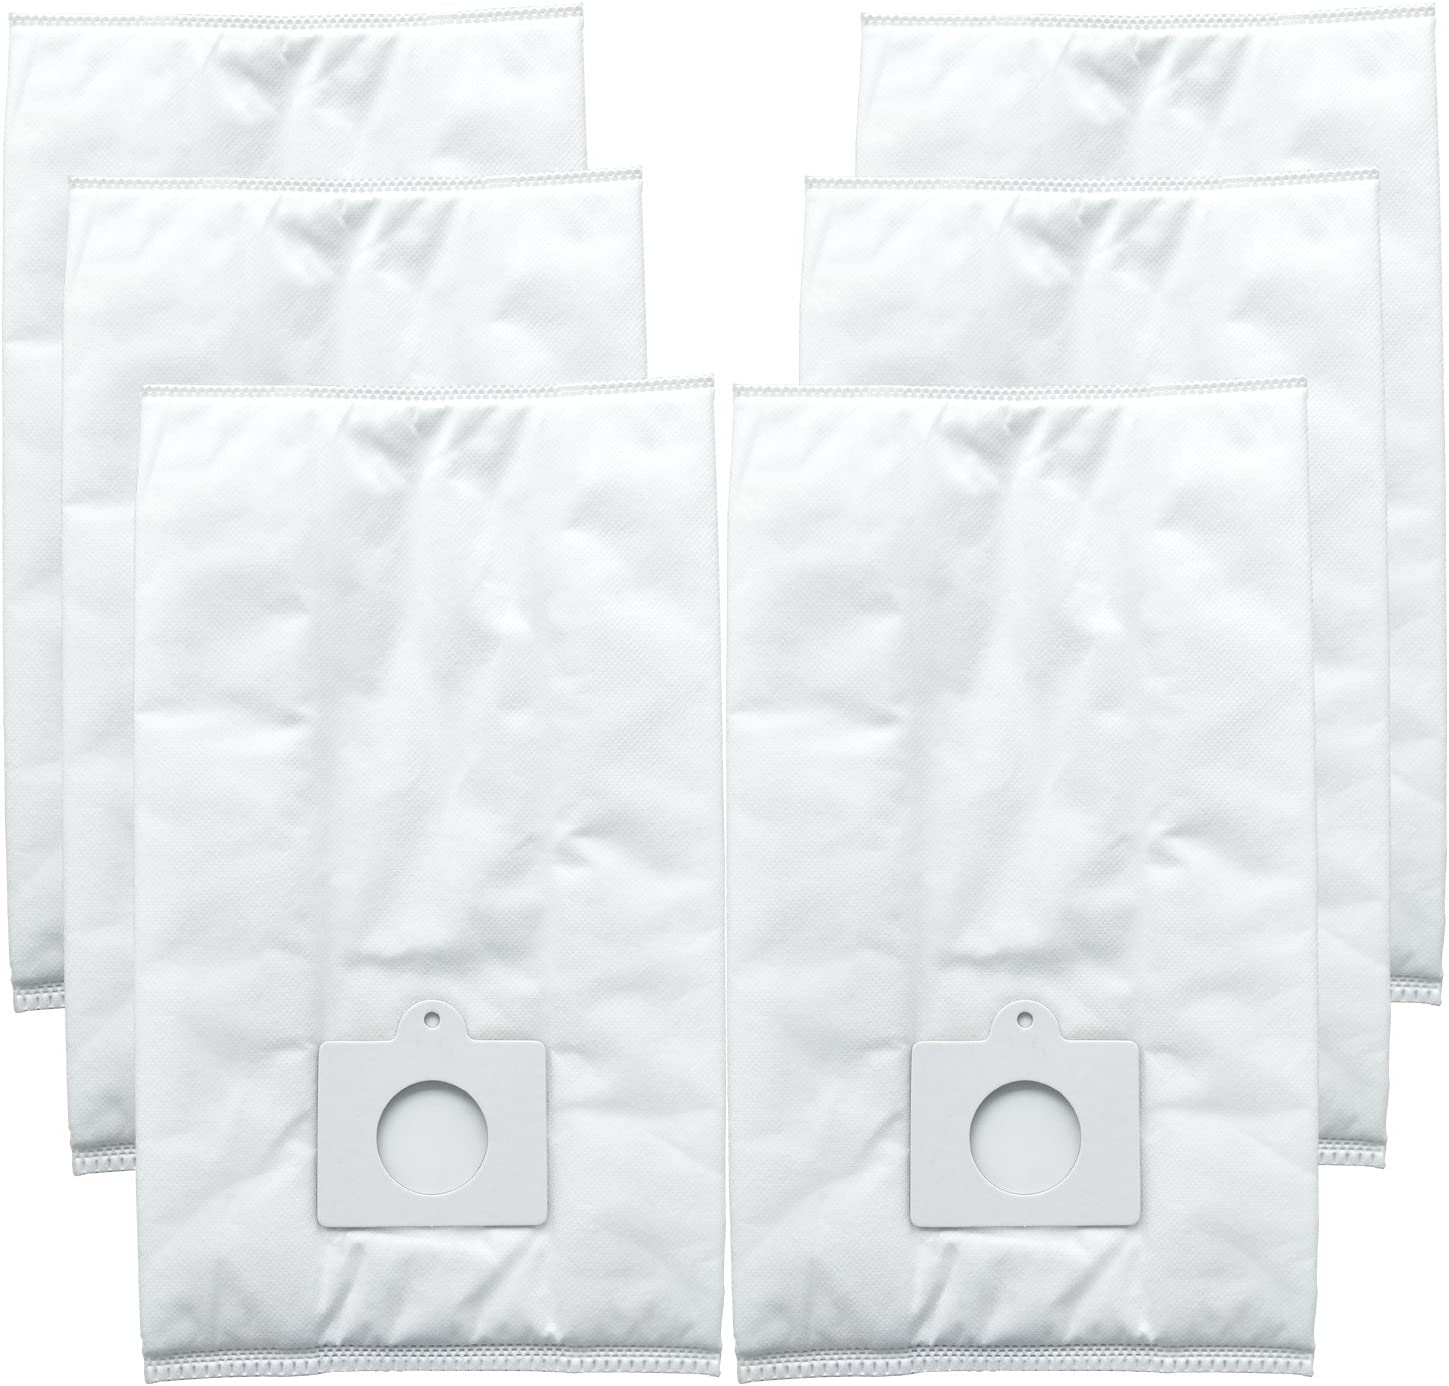 Vacuum Cleaner Dust Bag for Kenmore Type Q/C Bag (6 Pack)